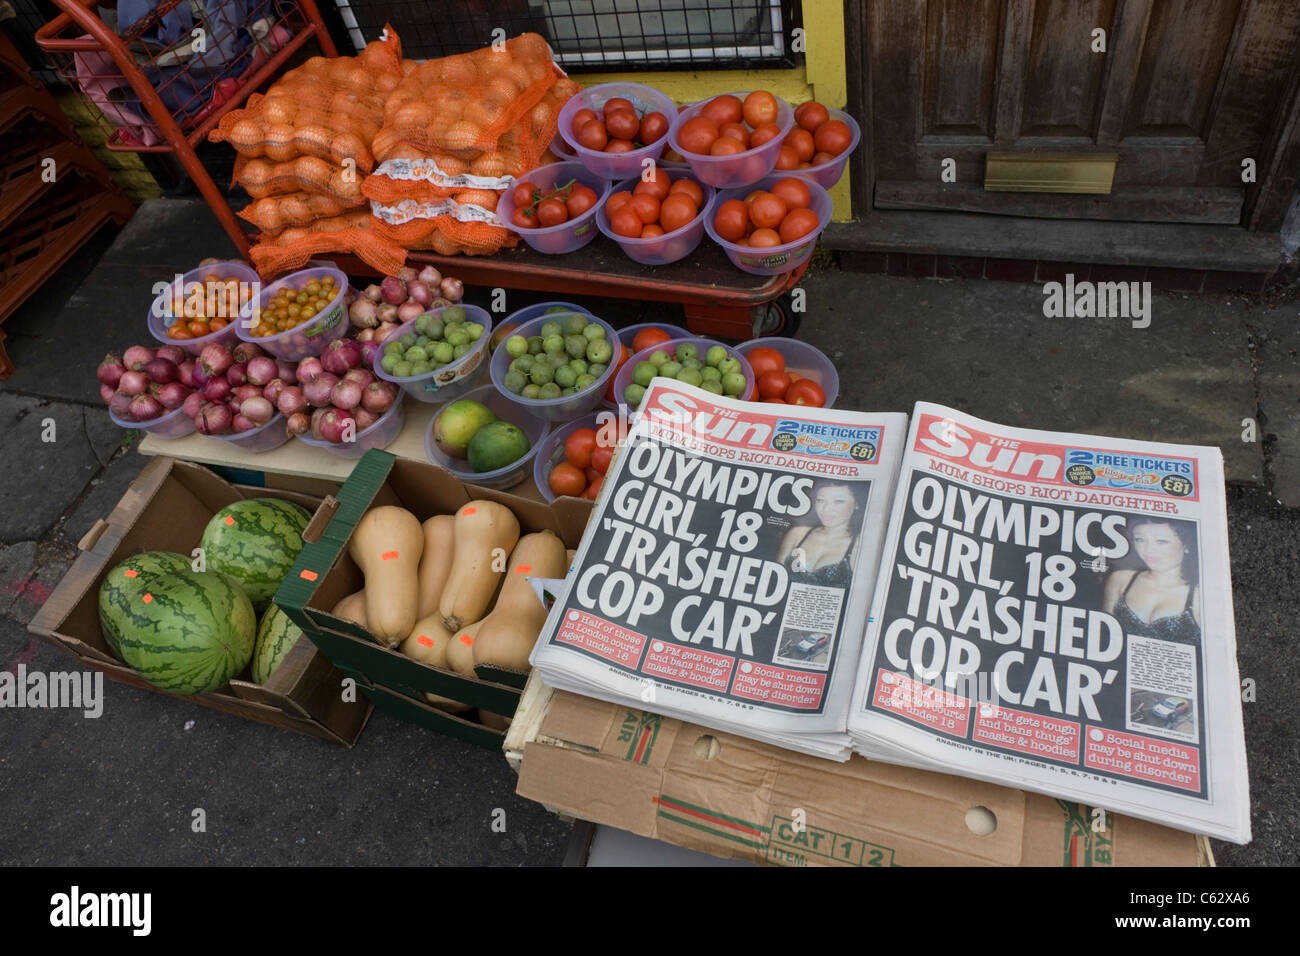 Looter and rioting headlines from the Sun newspaper in Clarence Road, Hackney. Stock Photo